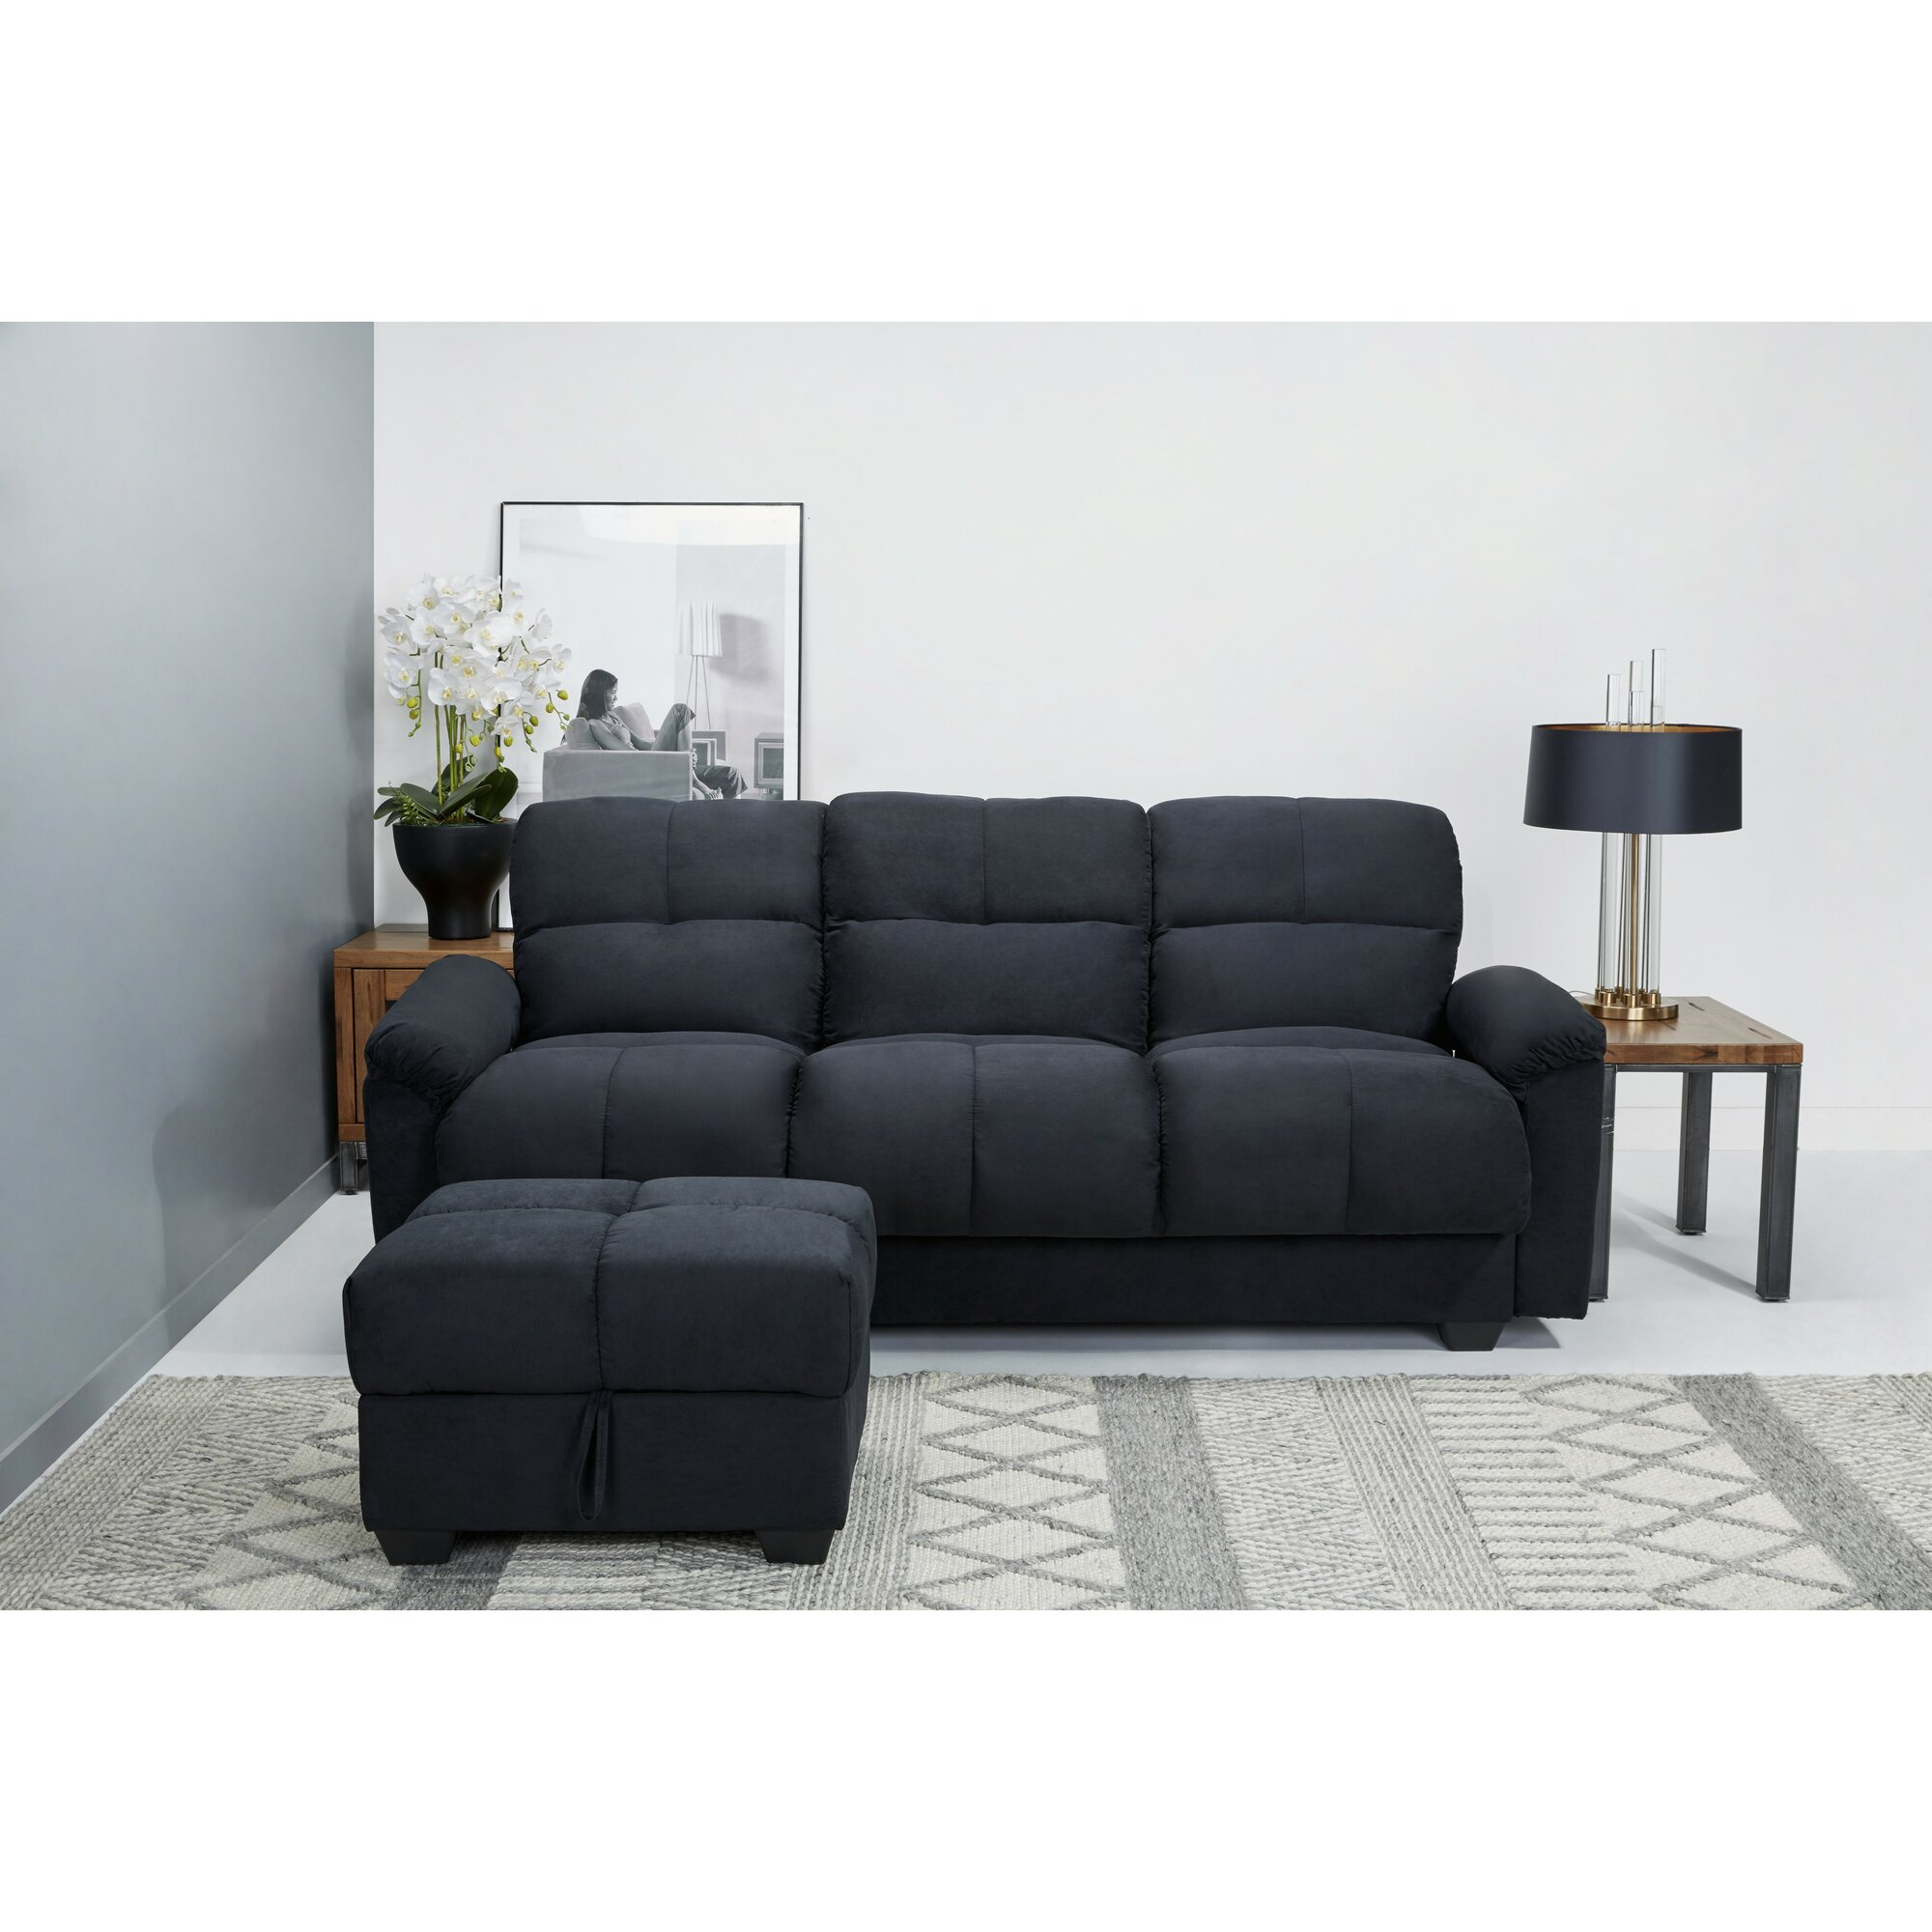 leader lifestyle 3 sitzer schlafsofa cate. Black Bedroom Furniture Sets. Home Design Ideas